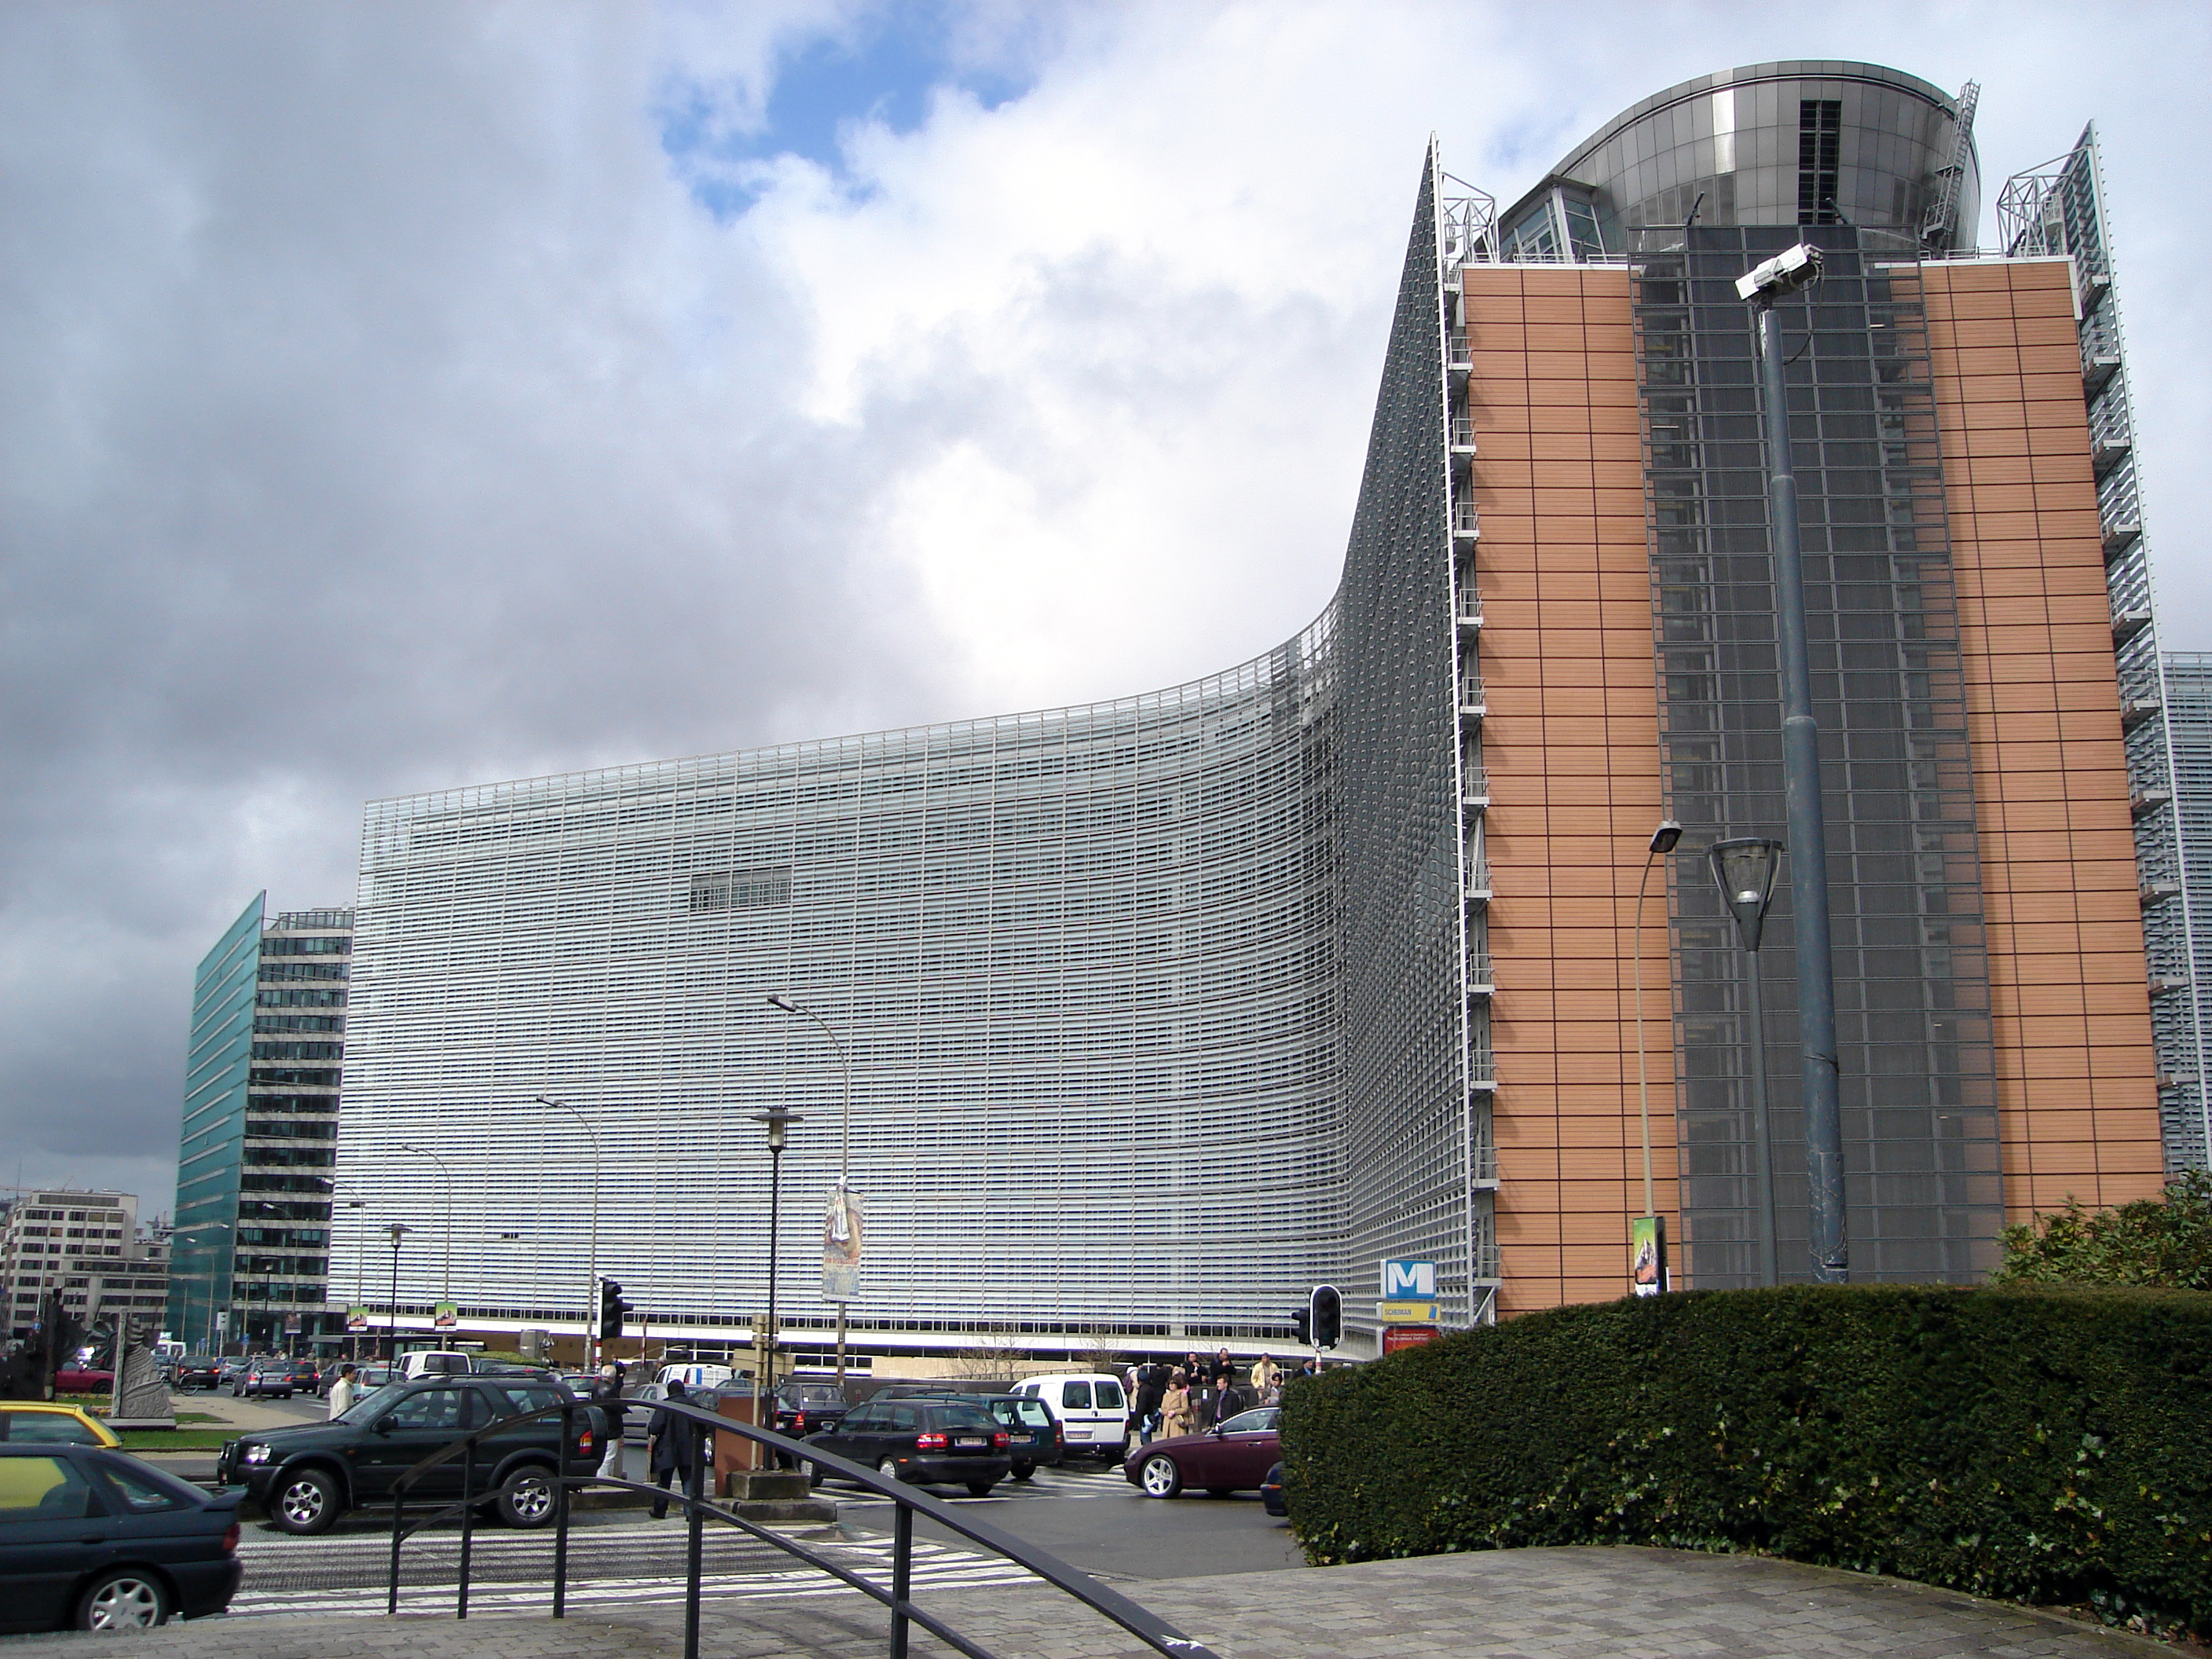 The Berlaymont Building, Brussels